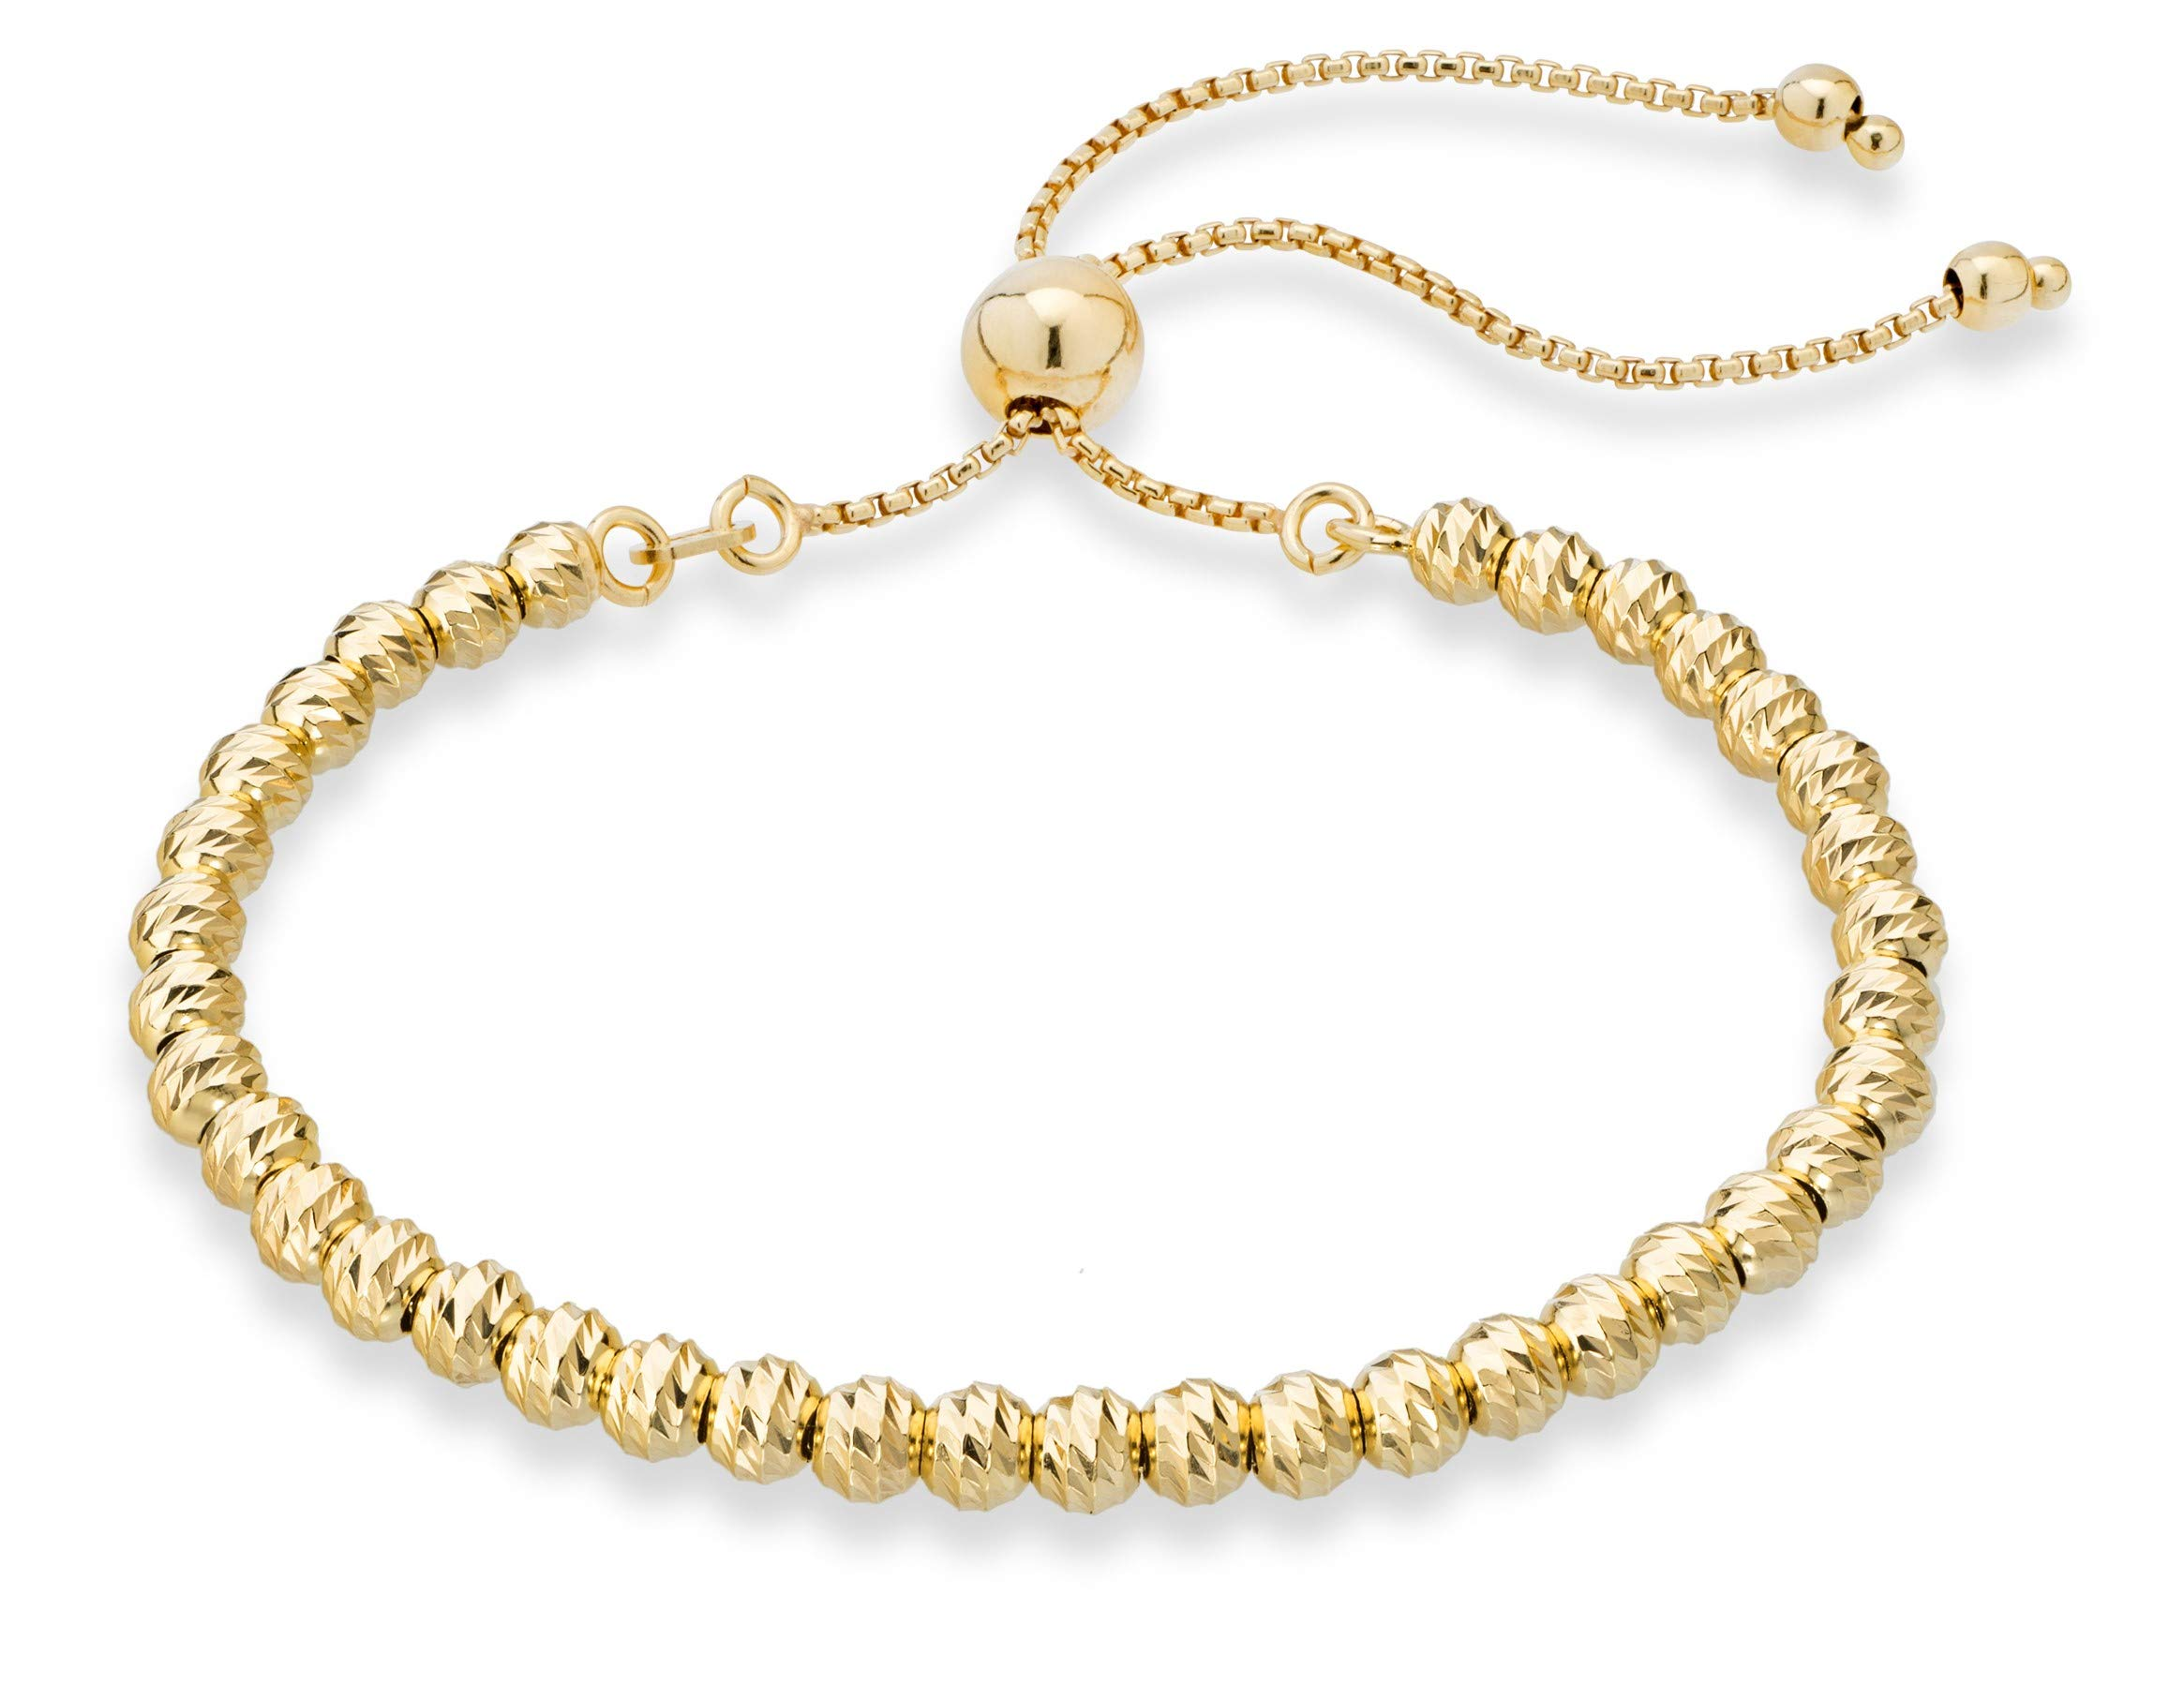 MiaBella 925 Sterling Silver Diamond-Cut Adjustable Bolo 4mm Bead Bracelet for Women, Handmade Italian Beaded Ball Chain Bracelet, Choice White or Yellow (Yellow-Gold-Plated-Silver) by MiaBella